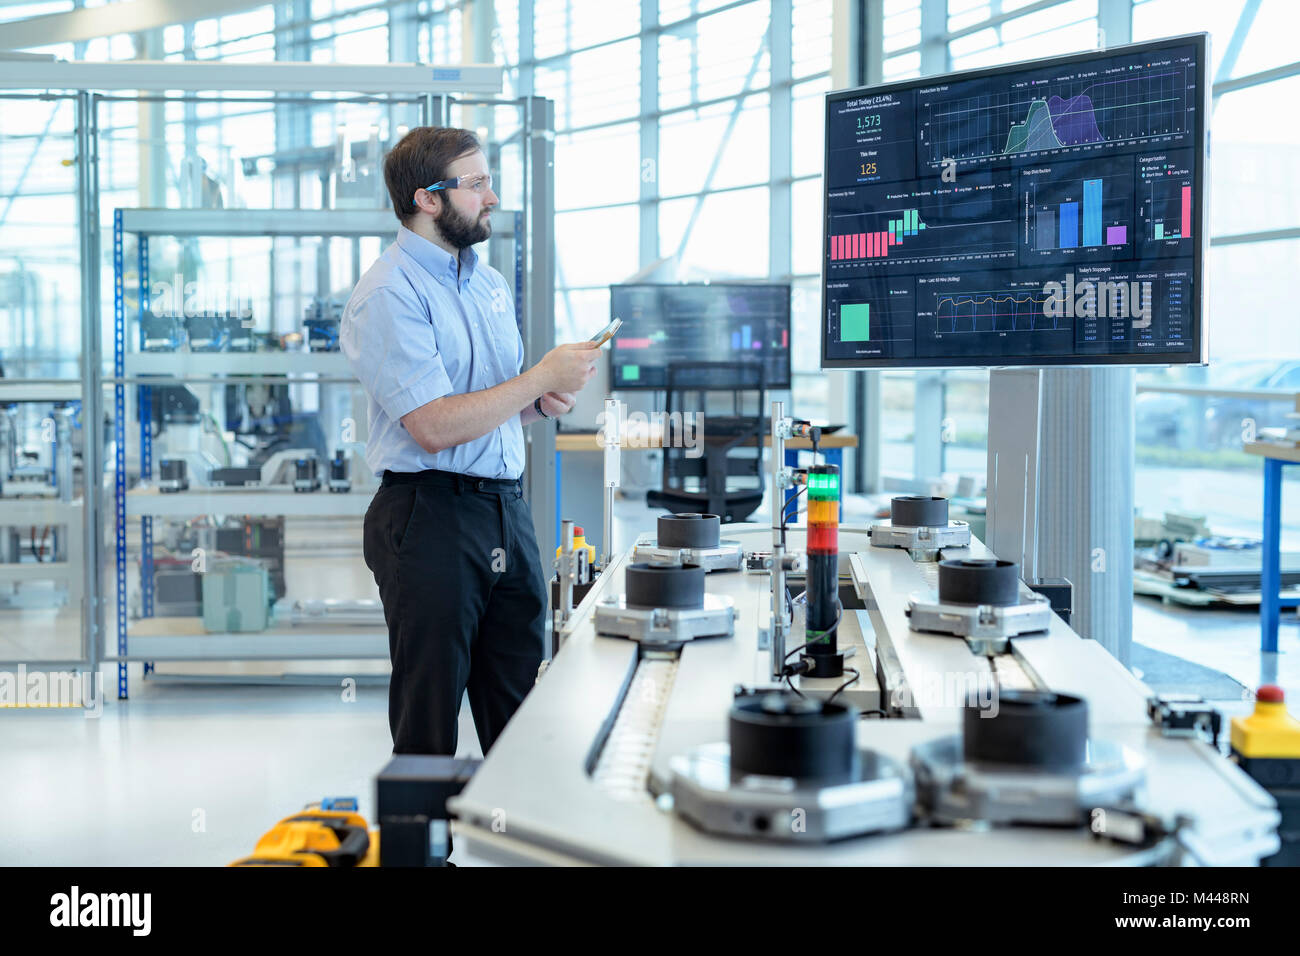 Engineer testing a robotic production simulator in robotics research facility - Stock Image